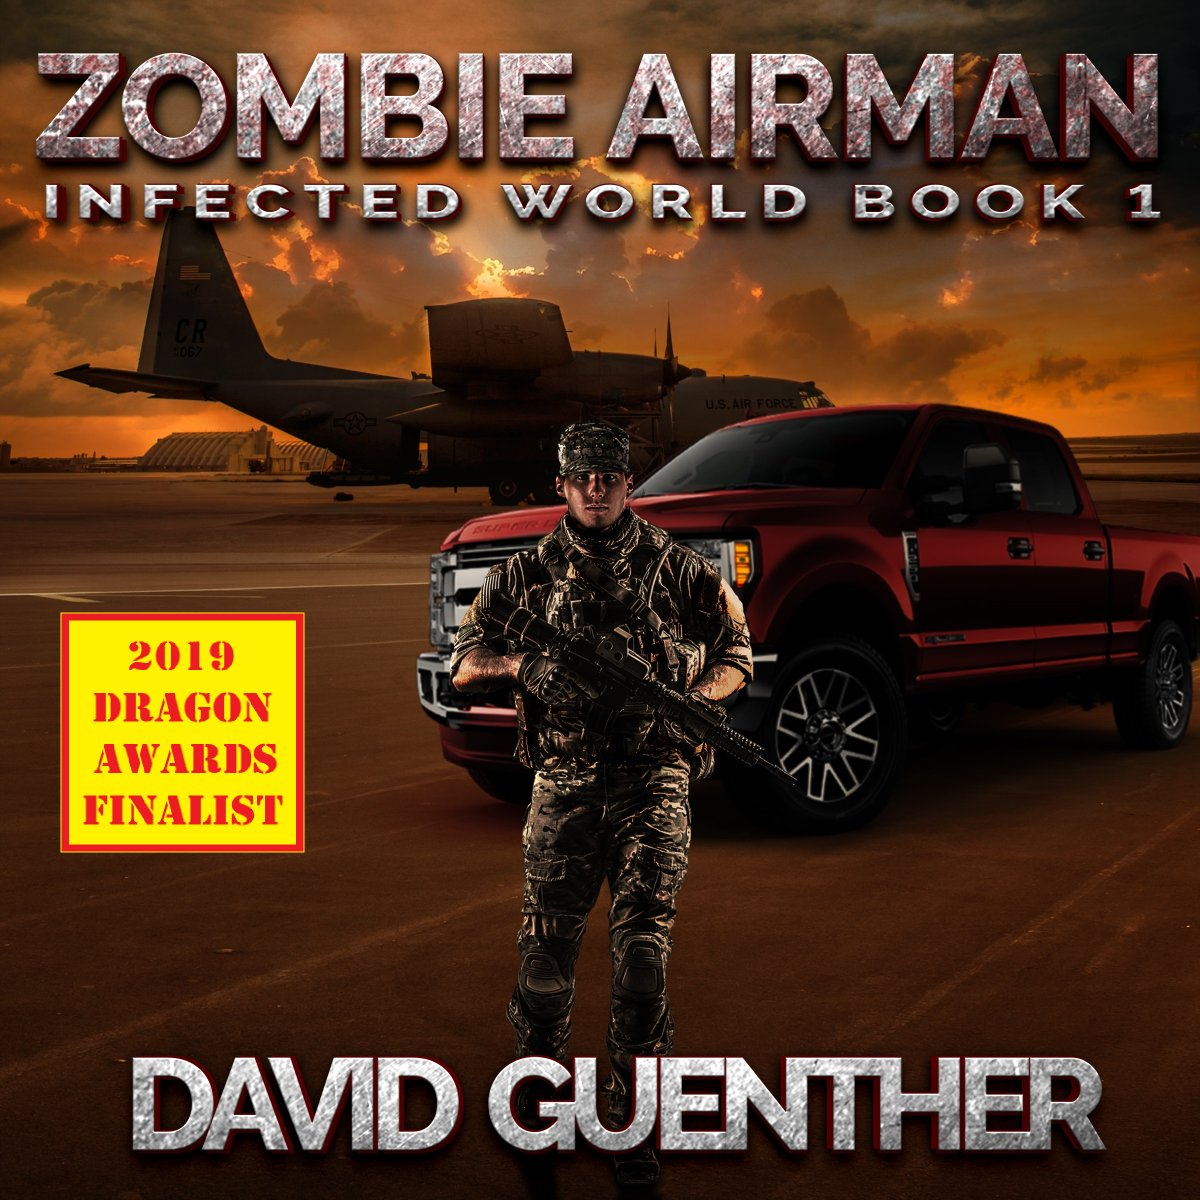 Zombies reinvented, check them out in the 2019 Dragon Awards horror finalist novel ZOMBIE AIRMAN #KindleUnlimited #readers #ScienceFiction #SFRTG #Kindle #War #fiction #Scifi #CR4U #zombiebooks #undead #Audiobook #NewAdult #Fiction #zombiestory https://amzn.to/2T1C3Mppic.twitter.com/YMzUTWodEk